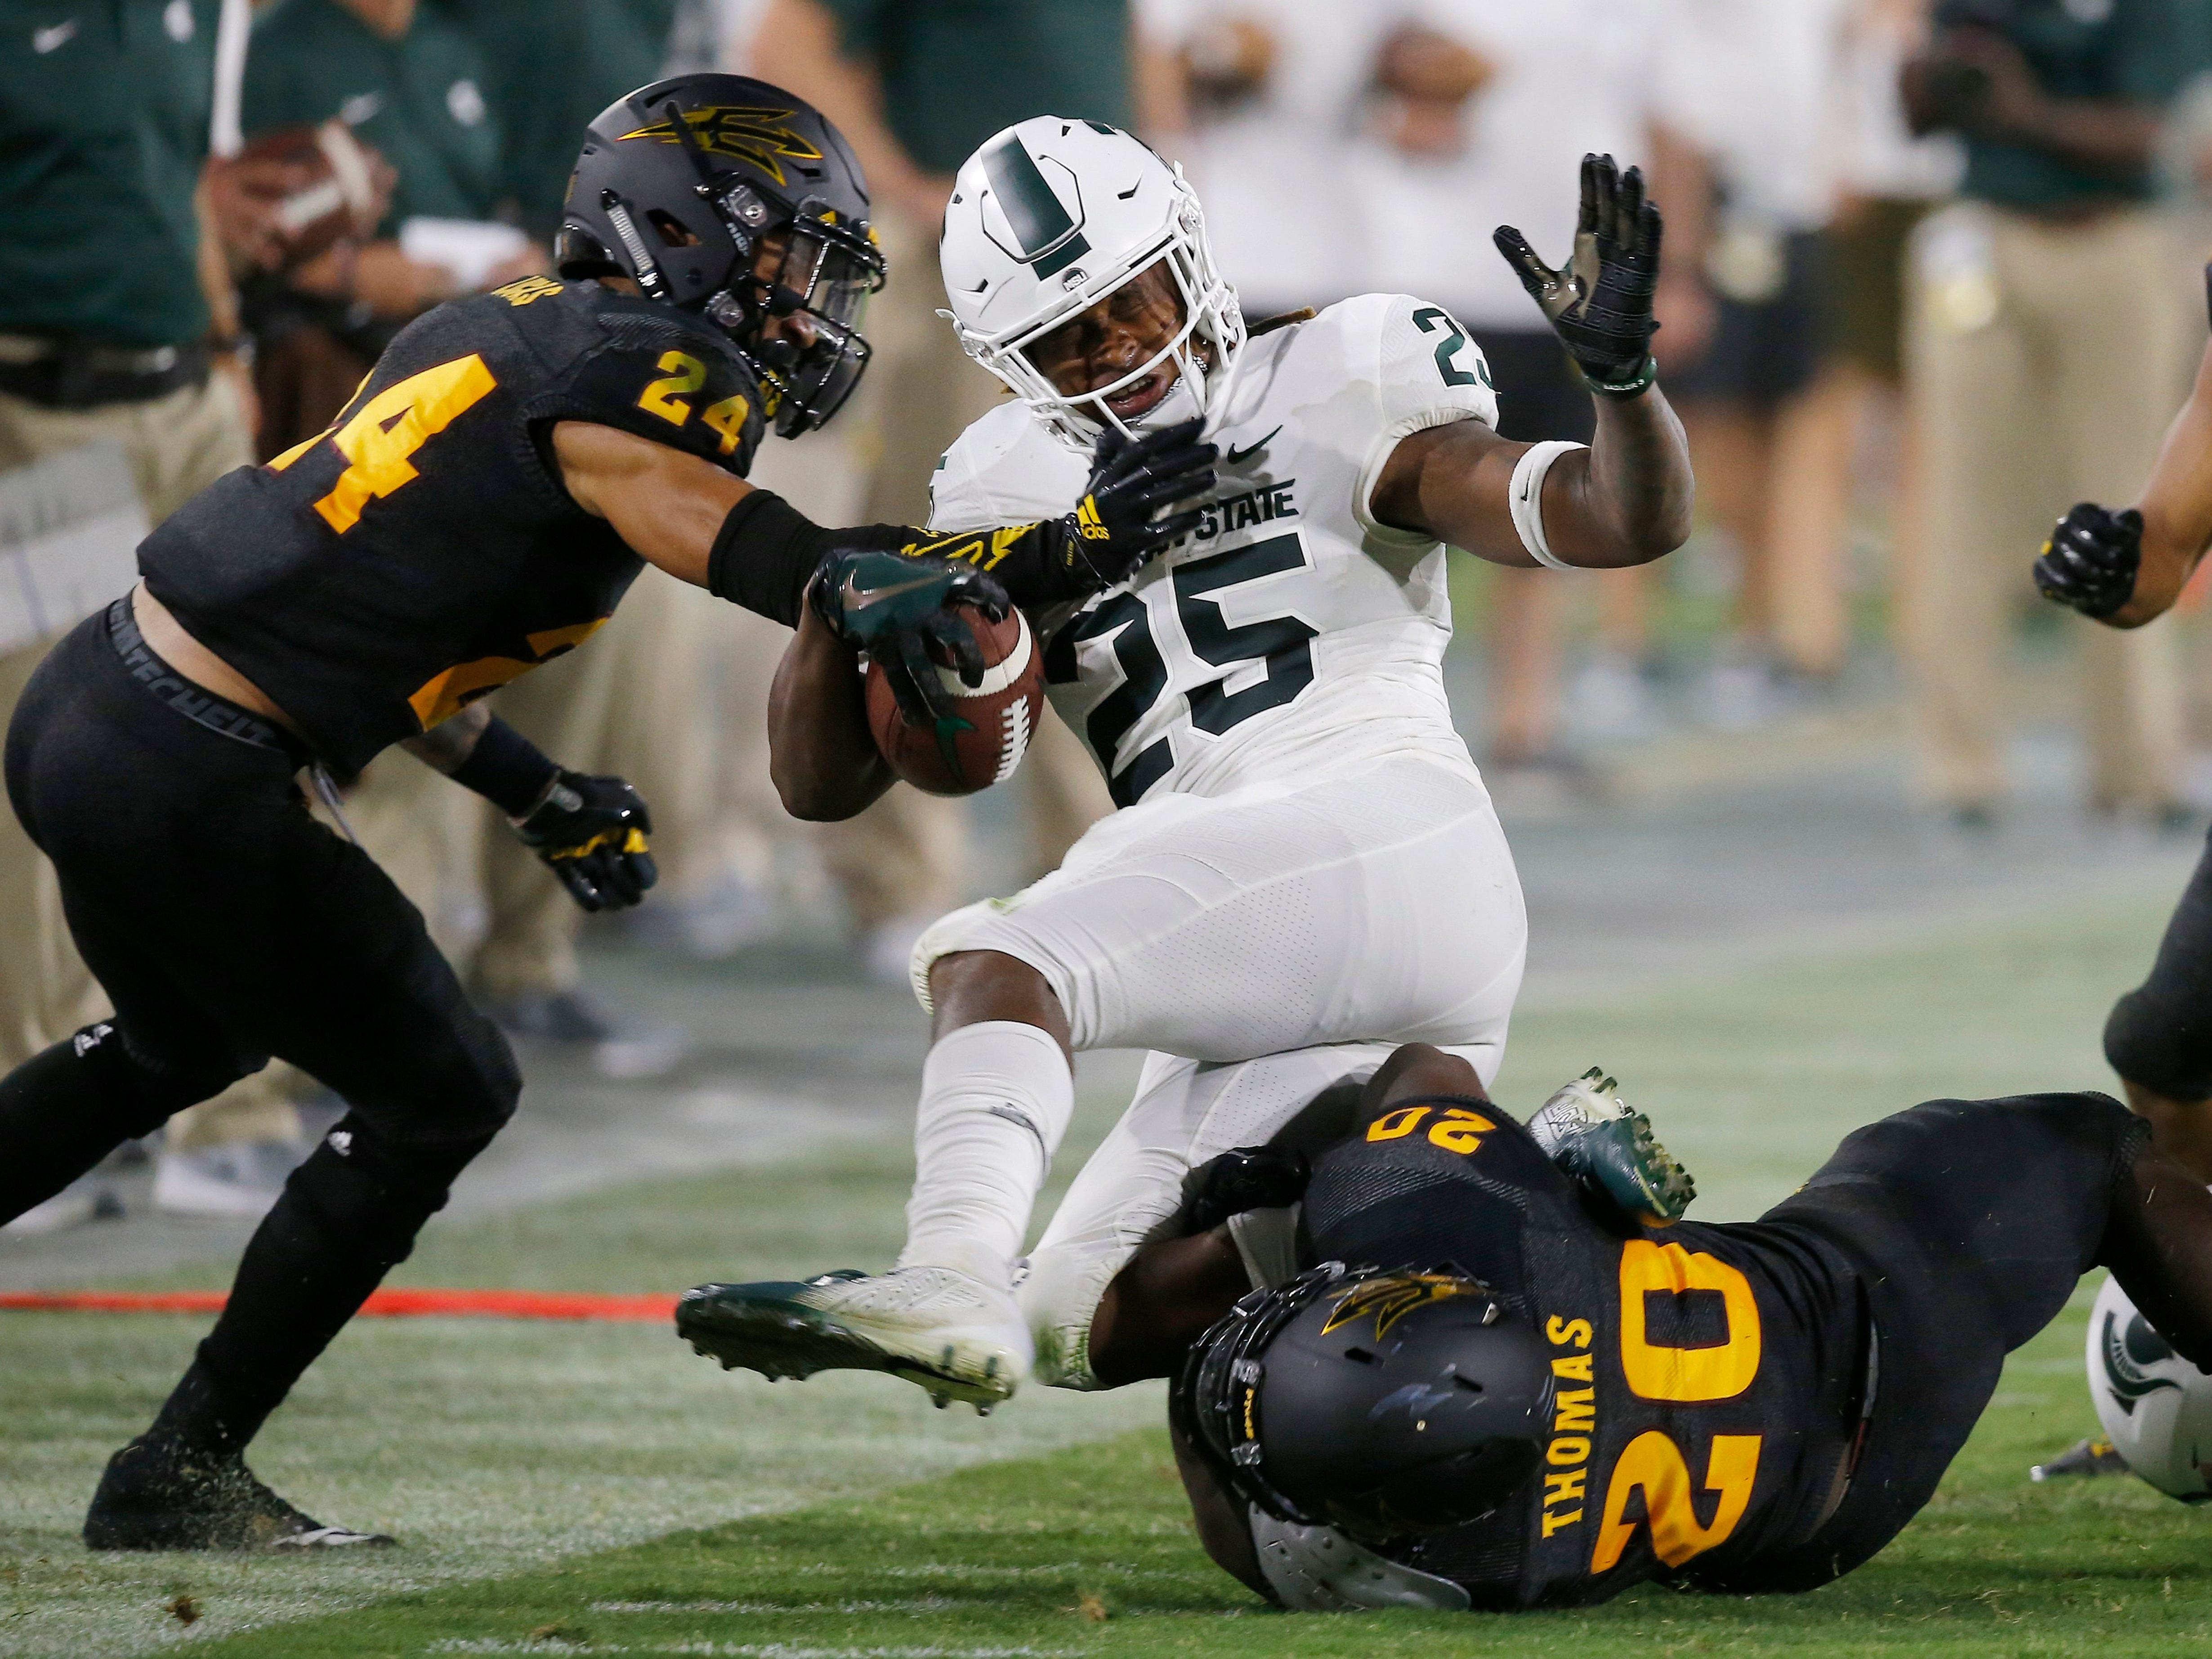 Michigan State wide receiver Darrell Stewart Jr. (25) gets tackled by Arizona State defensive back Chase Lucas (24) and linebacker Khaylan Kearse-Thomas (20) during the second half of an NCAA college football game Saturday, Sept. 8, 2018, in Tempe, Ariz. Arizona State defeated Michigan State 16-13.